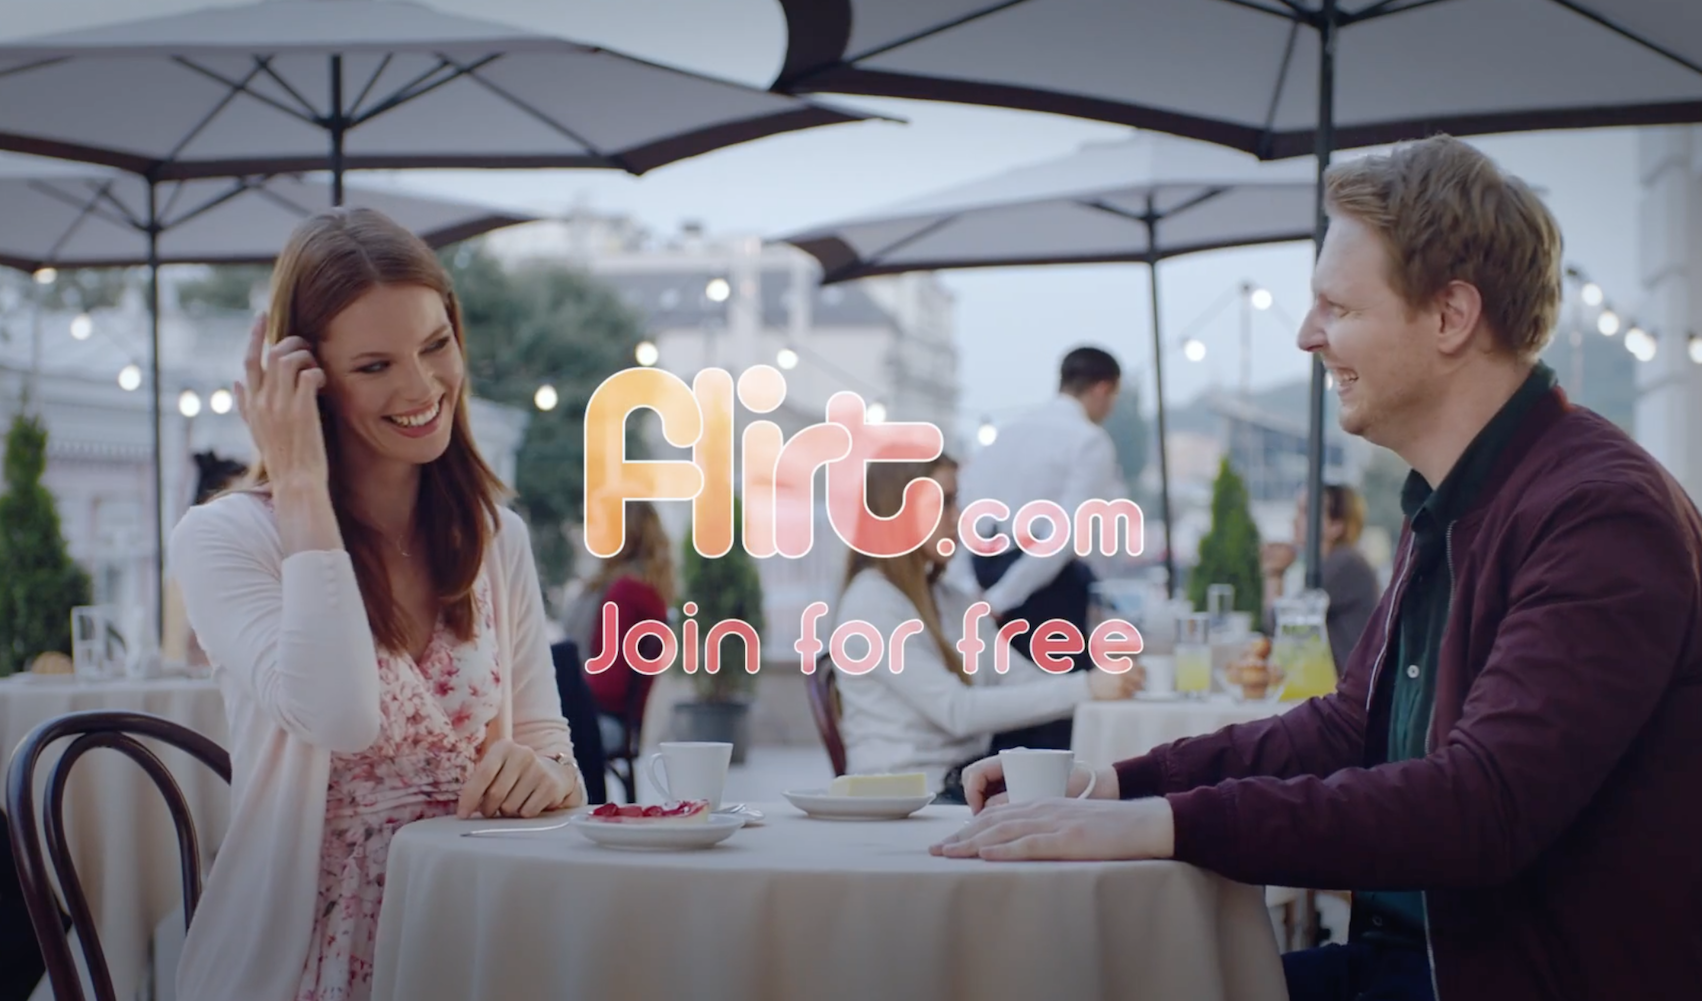 Together Networks Launches First TV Ad For Flirt.com